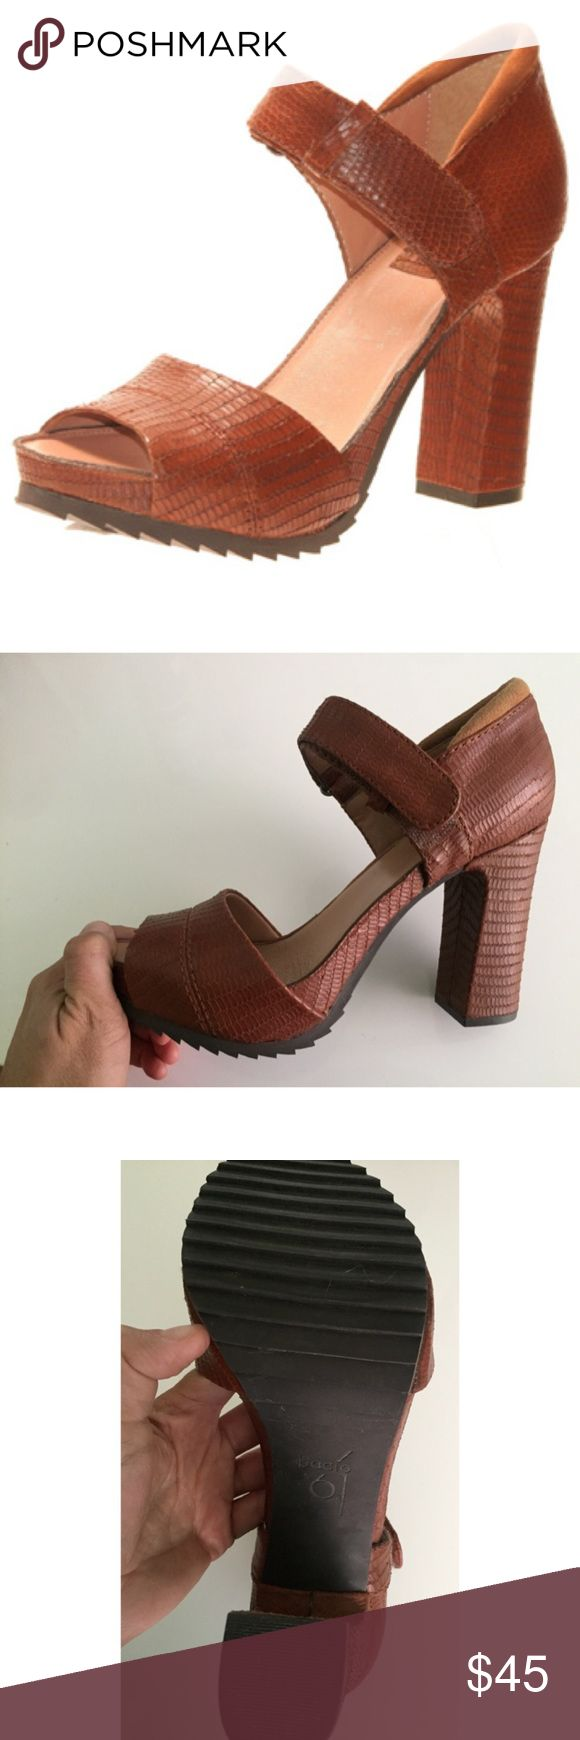 "BACIO 61 Vivezza Mary Jane Pump Leather 7.5 Retro Vivezza  mary jane platform pump leather upper rubber sole heel height 3.75"" platform height 1"" great condition! BACIO 61 Shoes Platforms"